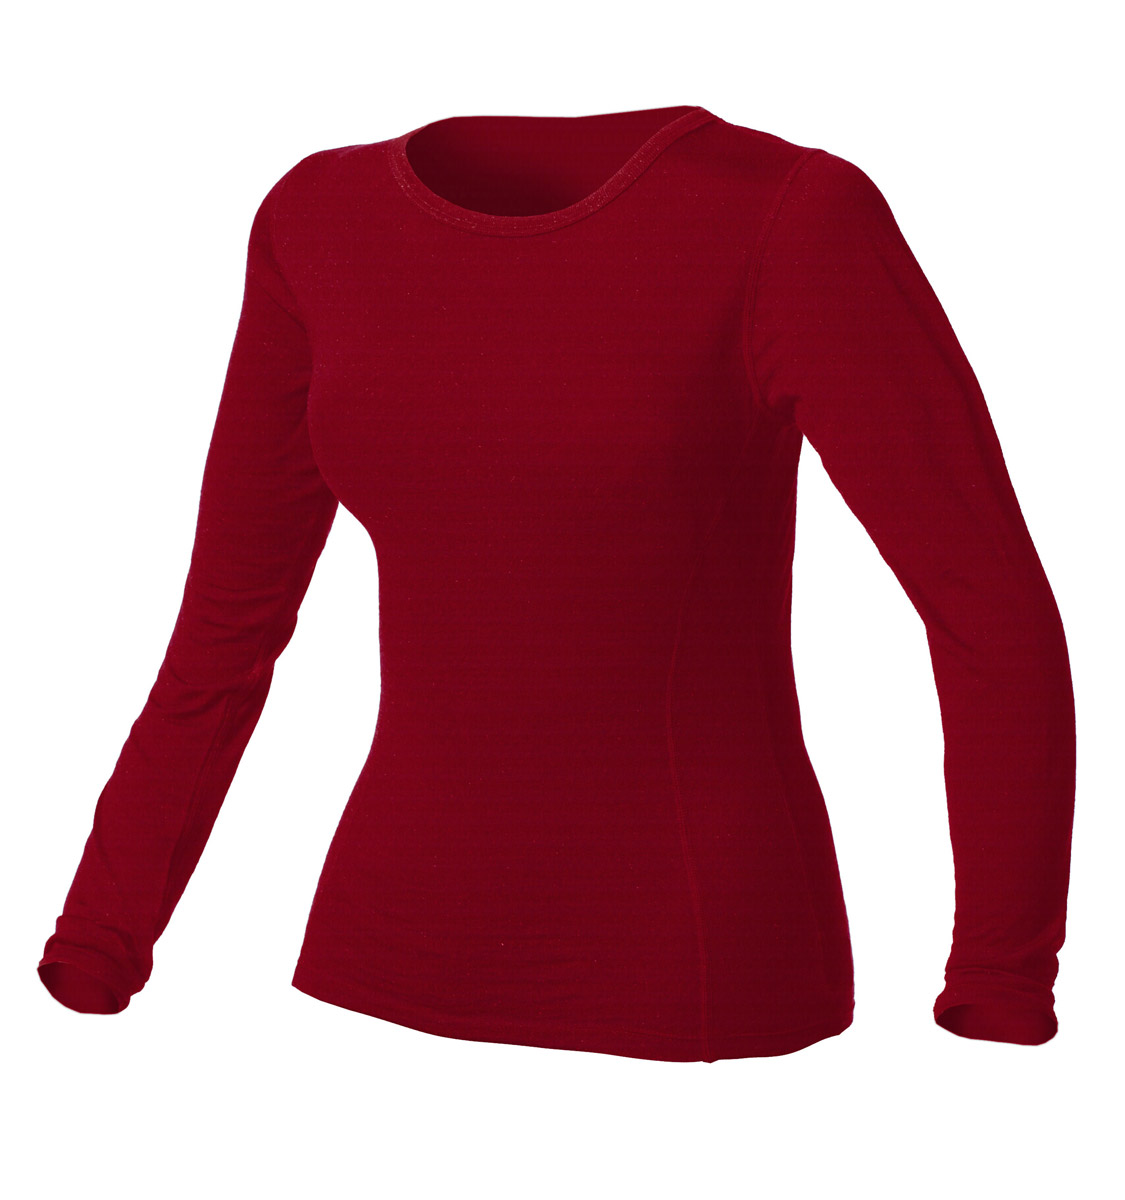 ossipee women 6599 minus33 women's ossipee women's midweight crew - 804 - minus33 women's ossipee crew a well fitted princess cut crew that provides warmth and comfort.